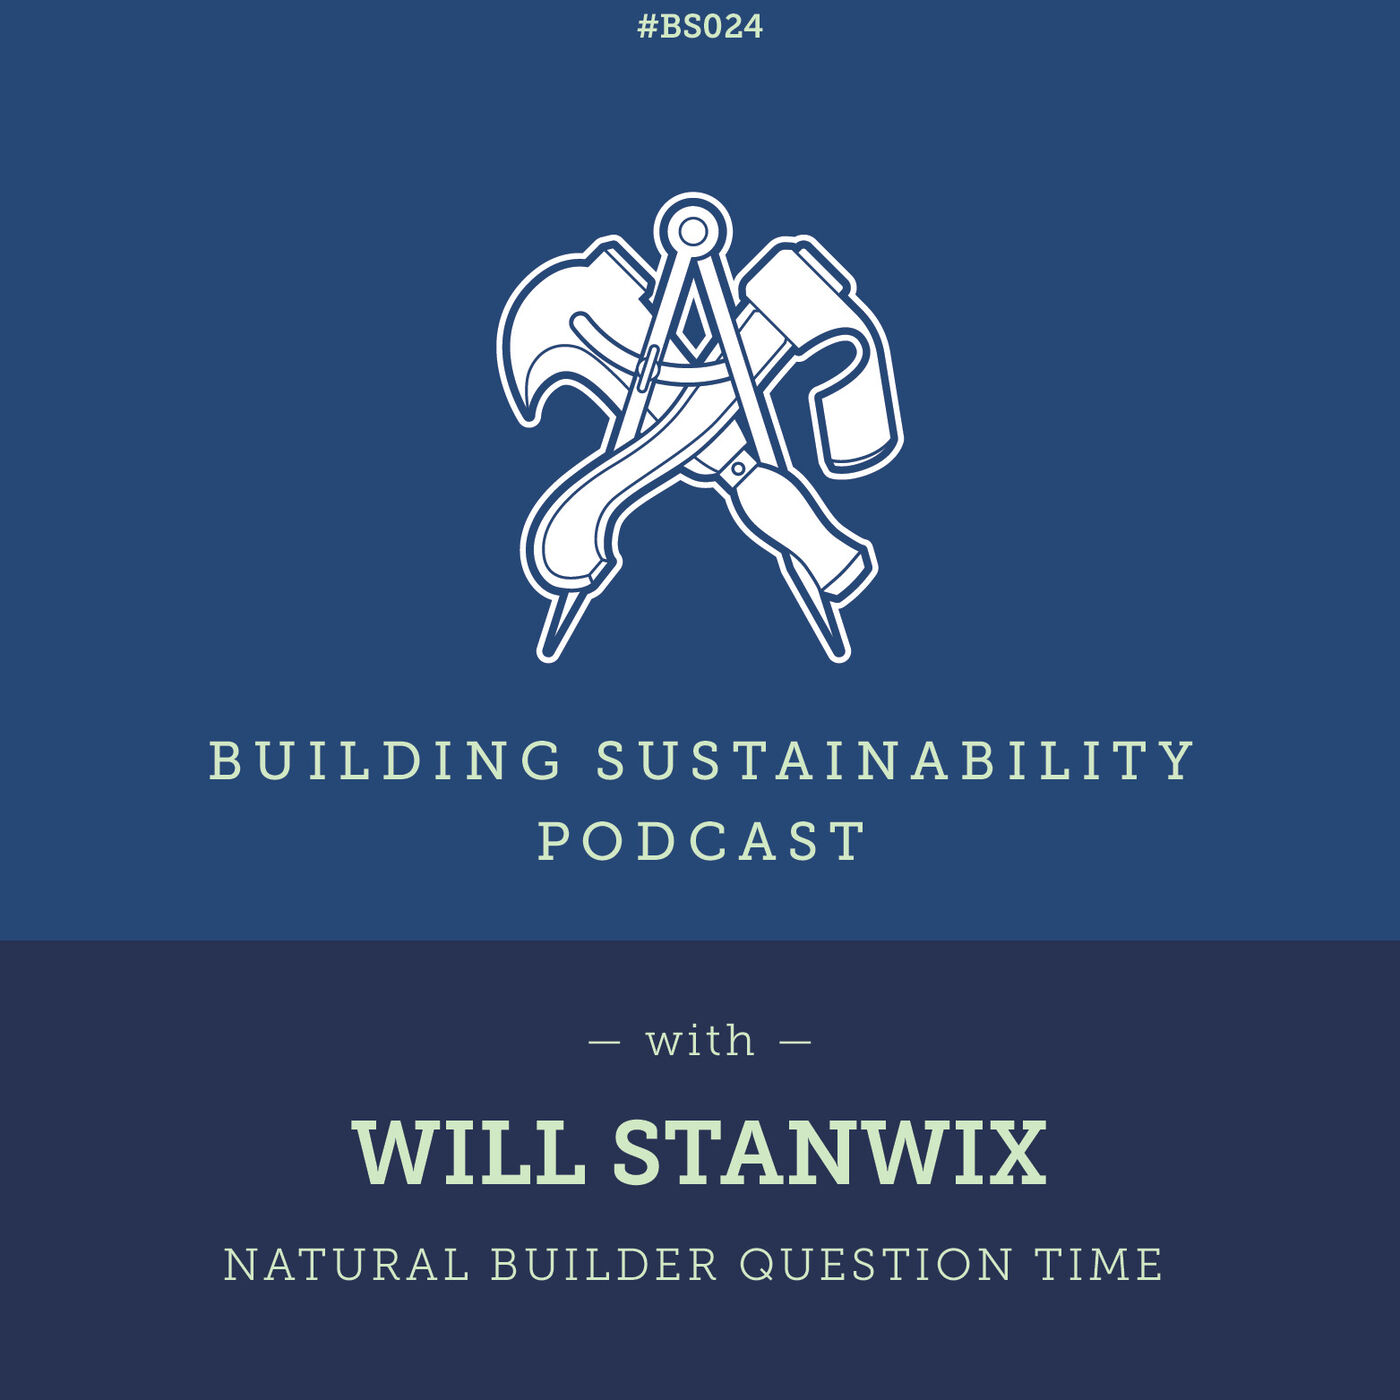 Natural Builder Question Time Pt1 - Will Stanwix - BS024